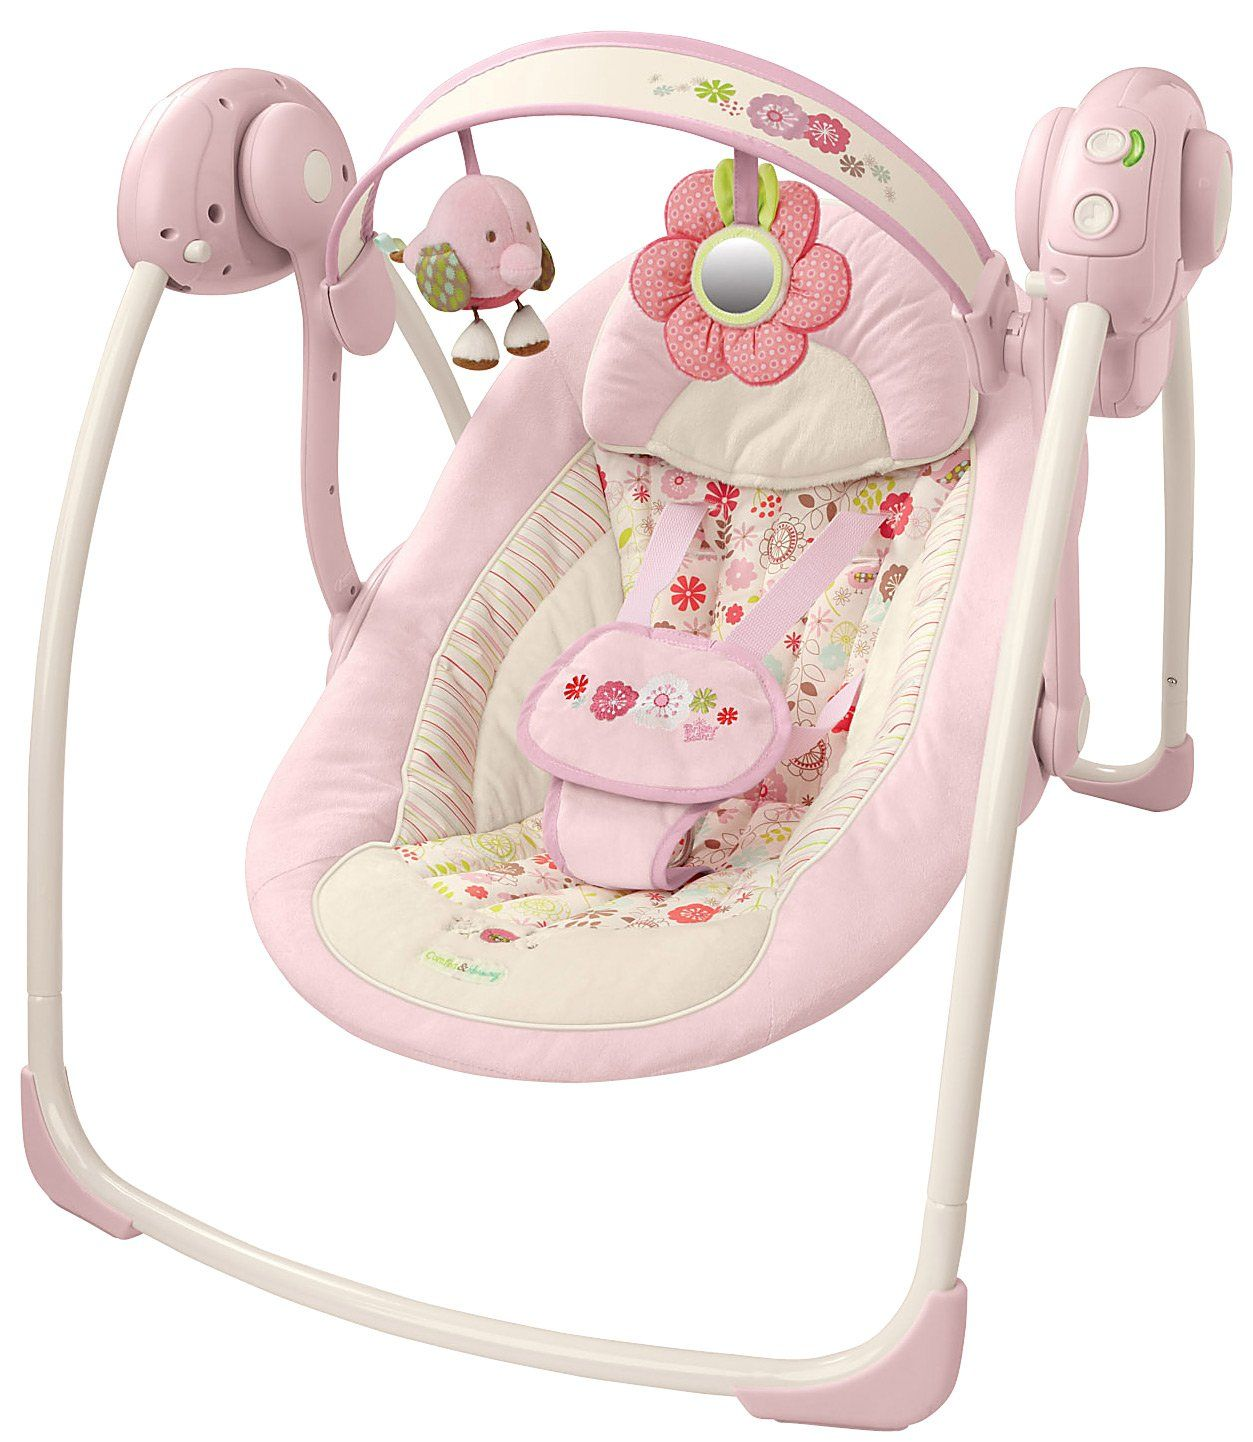 Bright Starts Comfort Harmony Portable Swing Vintage Garden Bright Starts Baby Swings Baby Rockers Bouncer